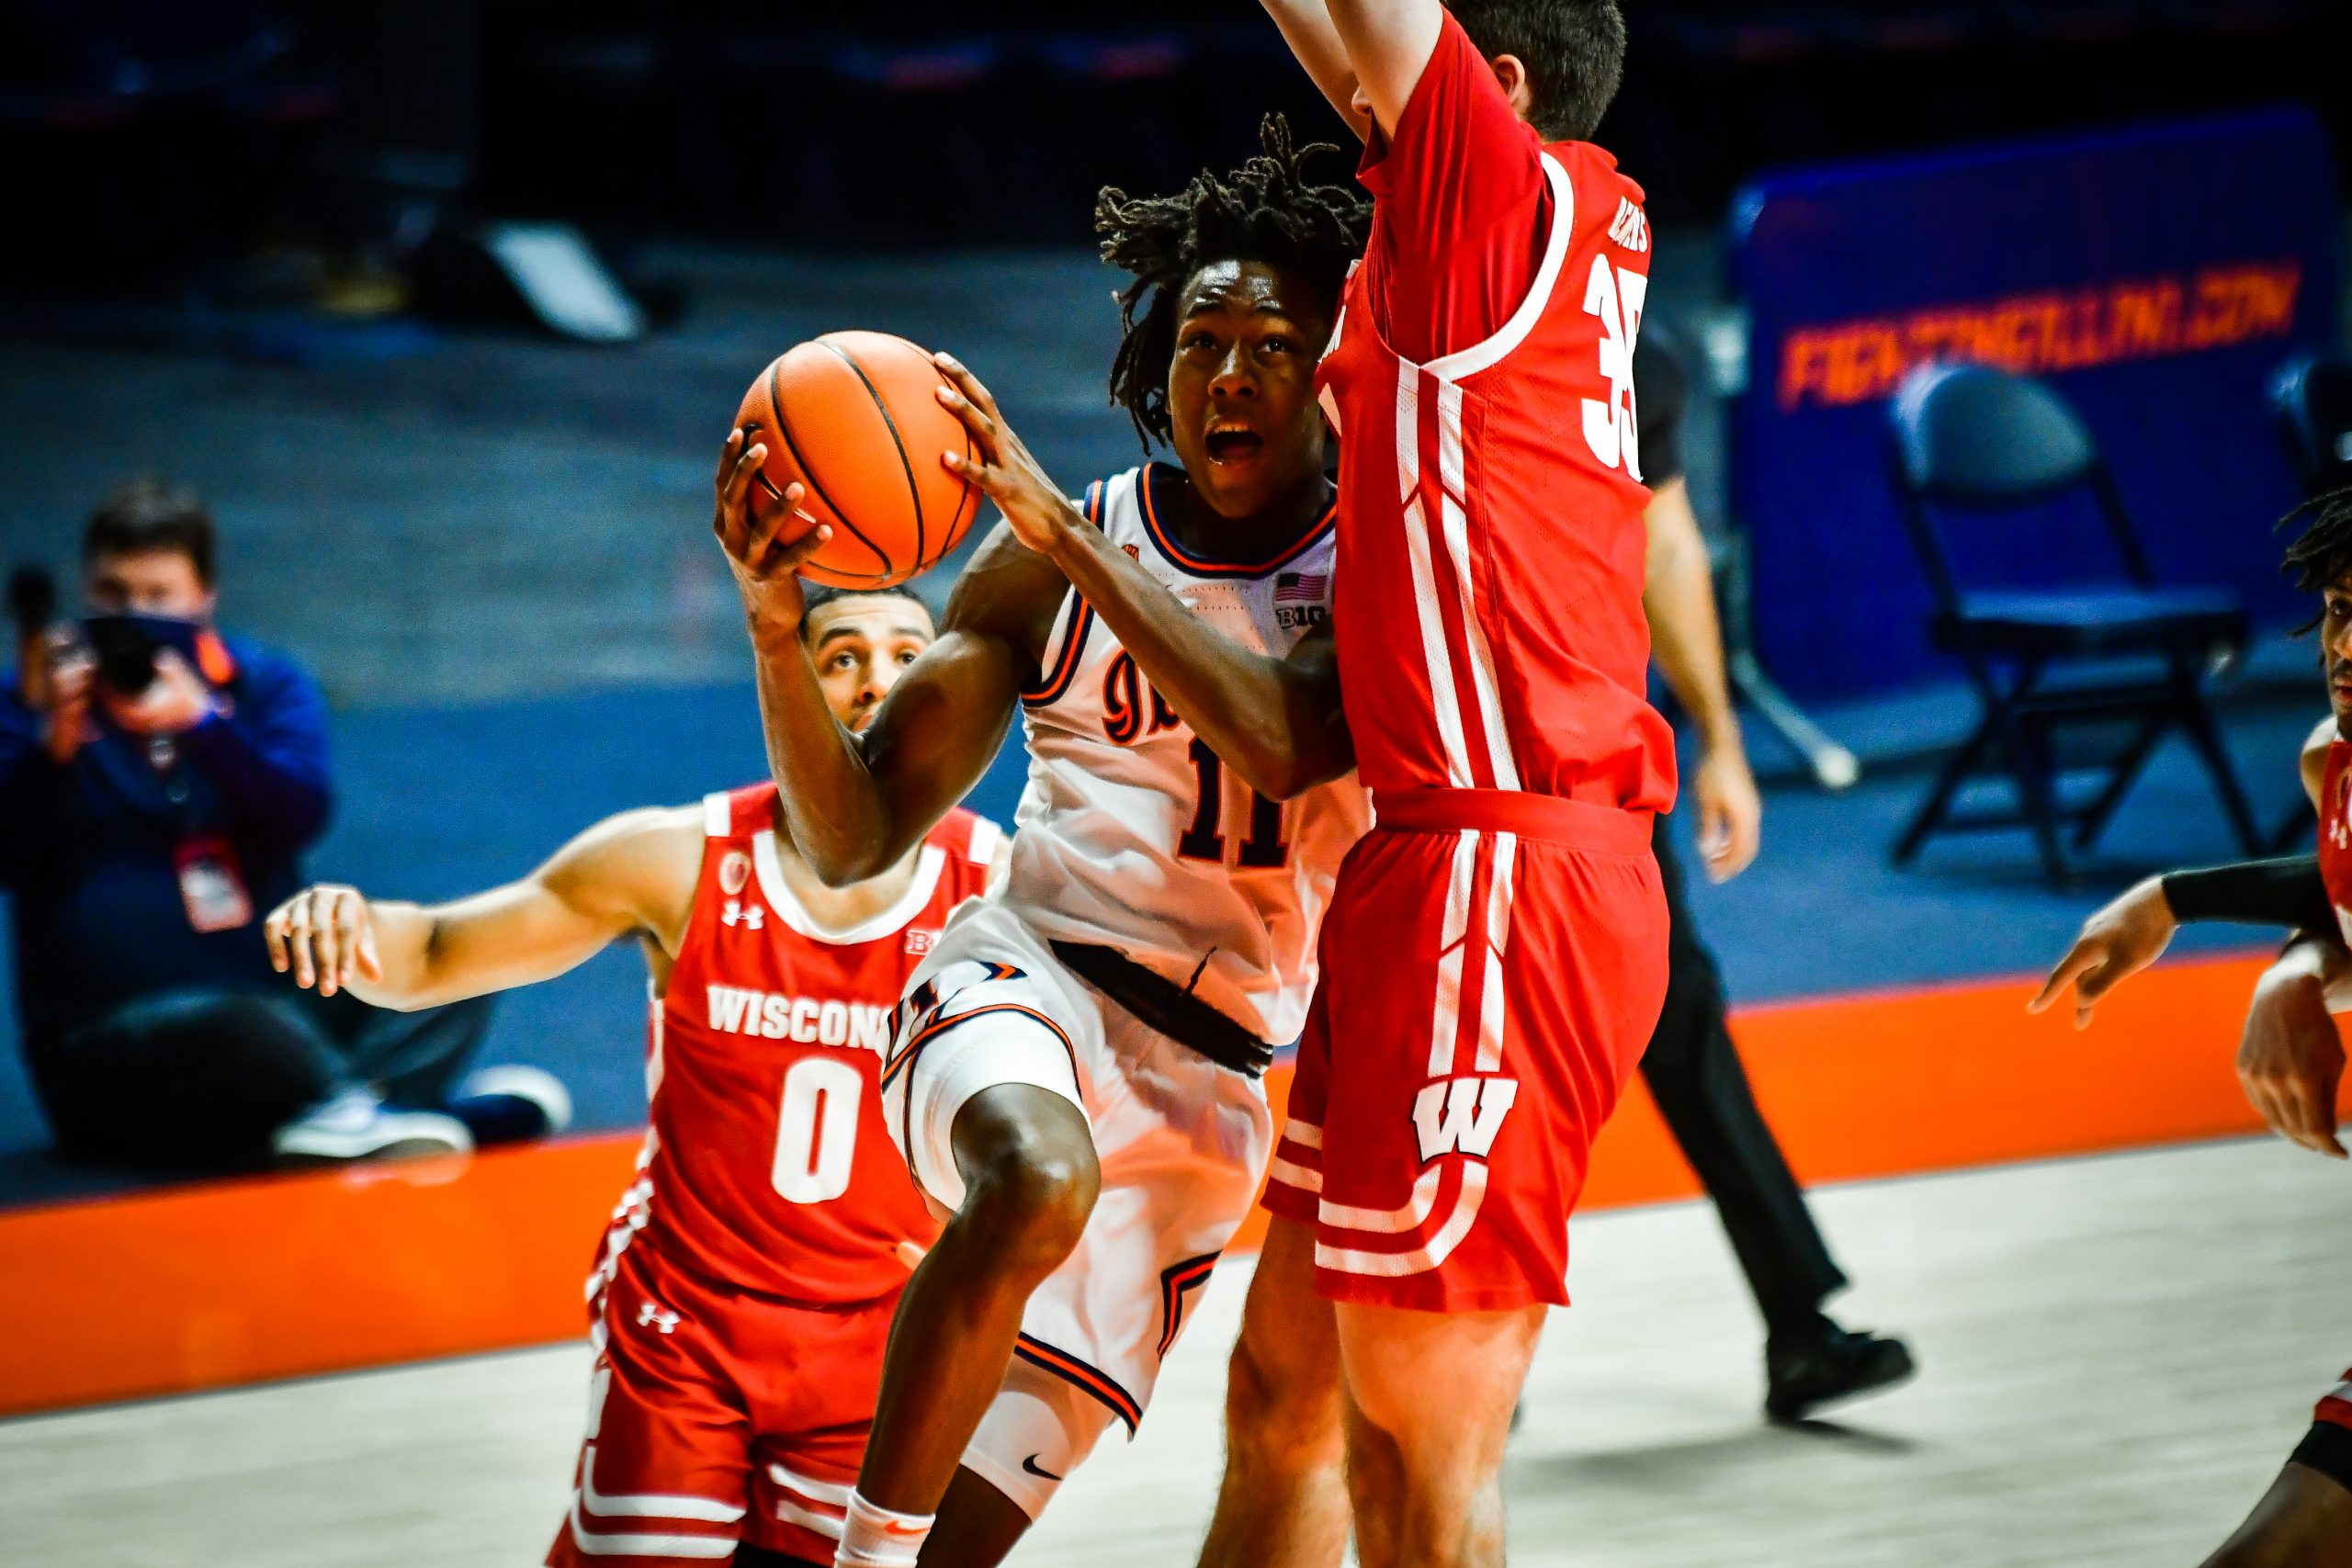 Ayo goes for a triple-double as Illini soar past Badgers, 75-60